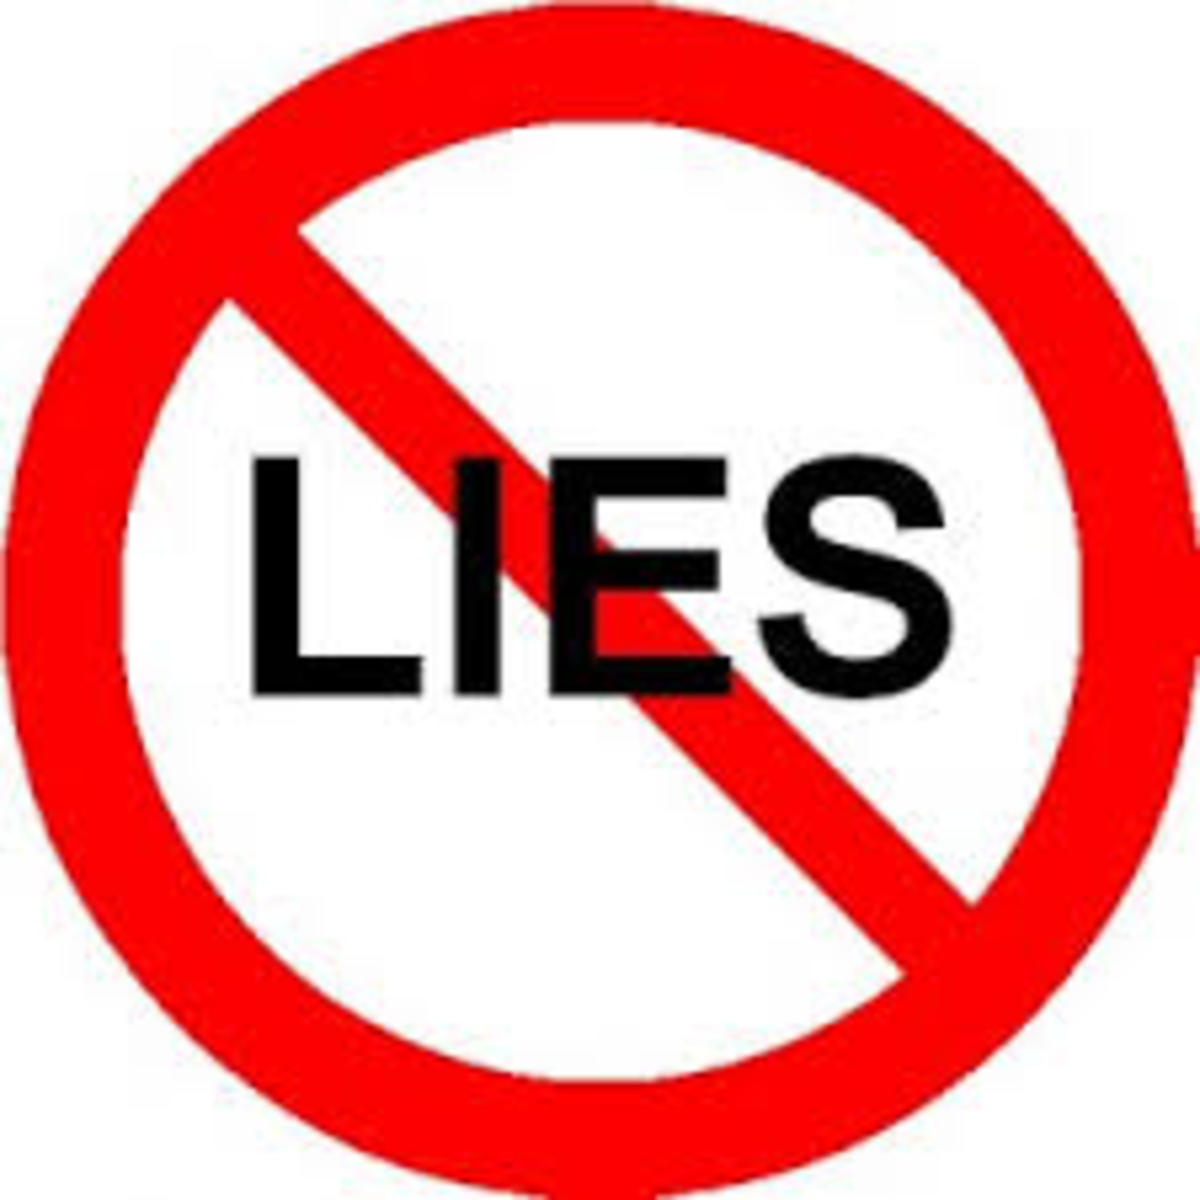 Try to tell small truths if you cannot stop lying